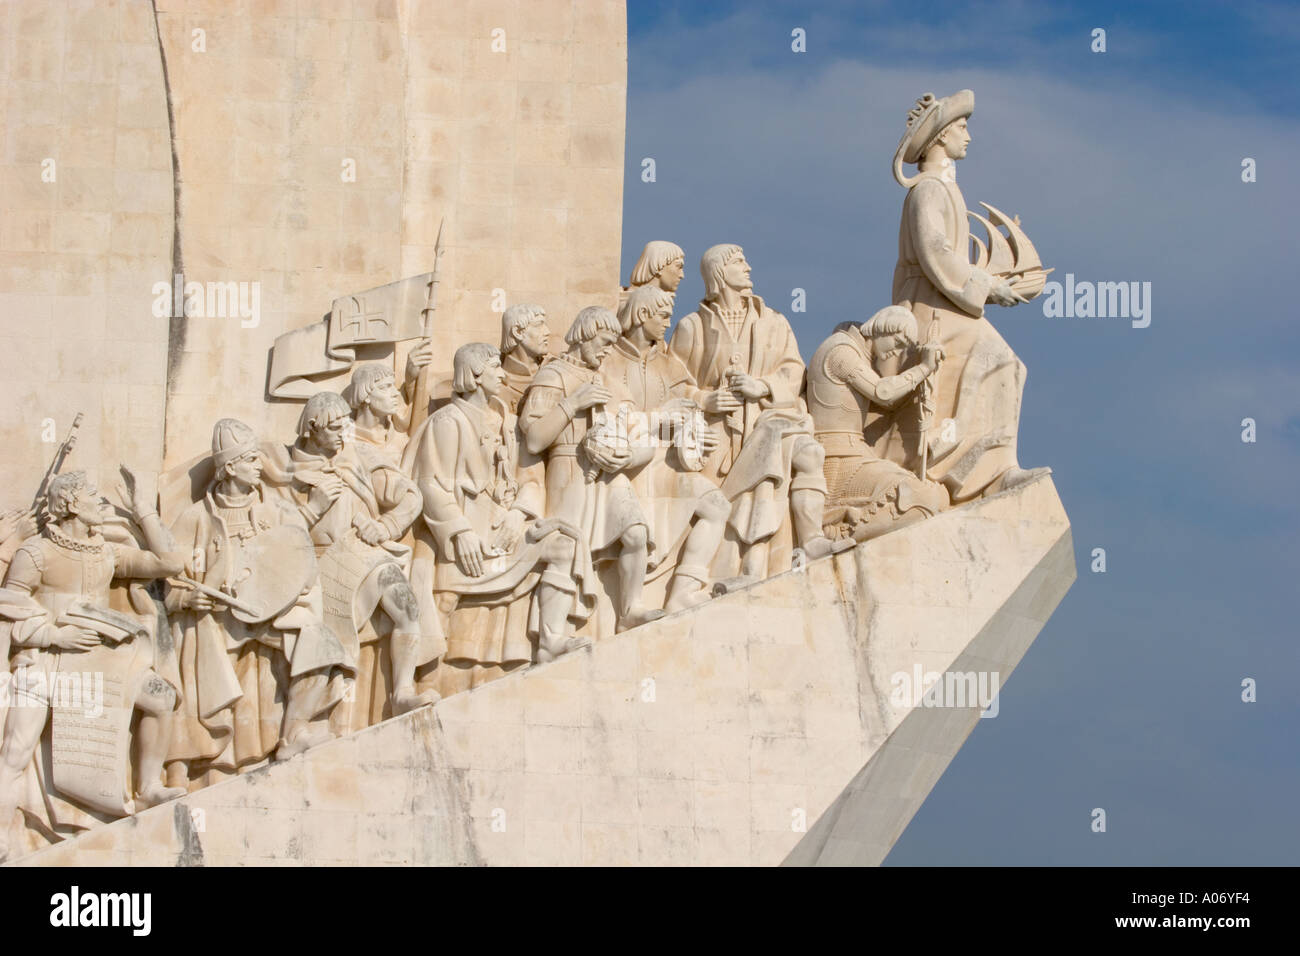 Lisbon Portugal Monument to the Discoveries - Stock Image